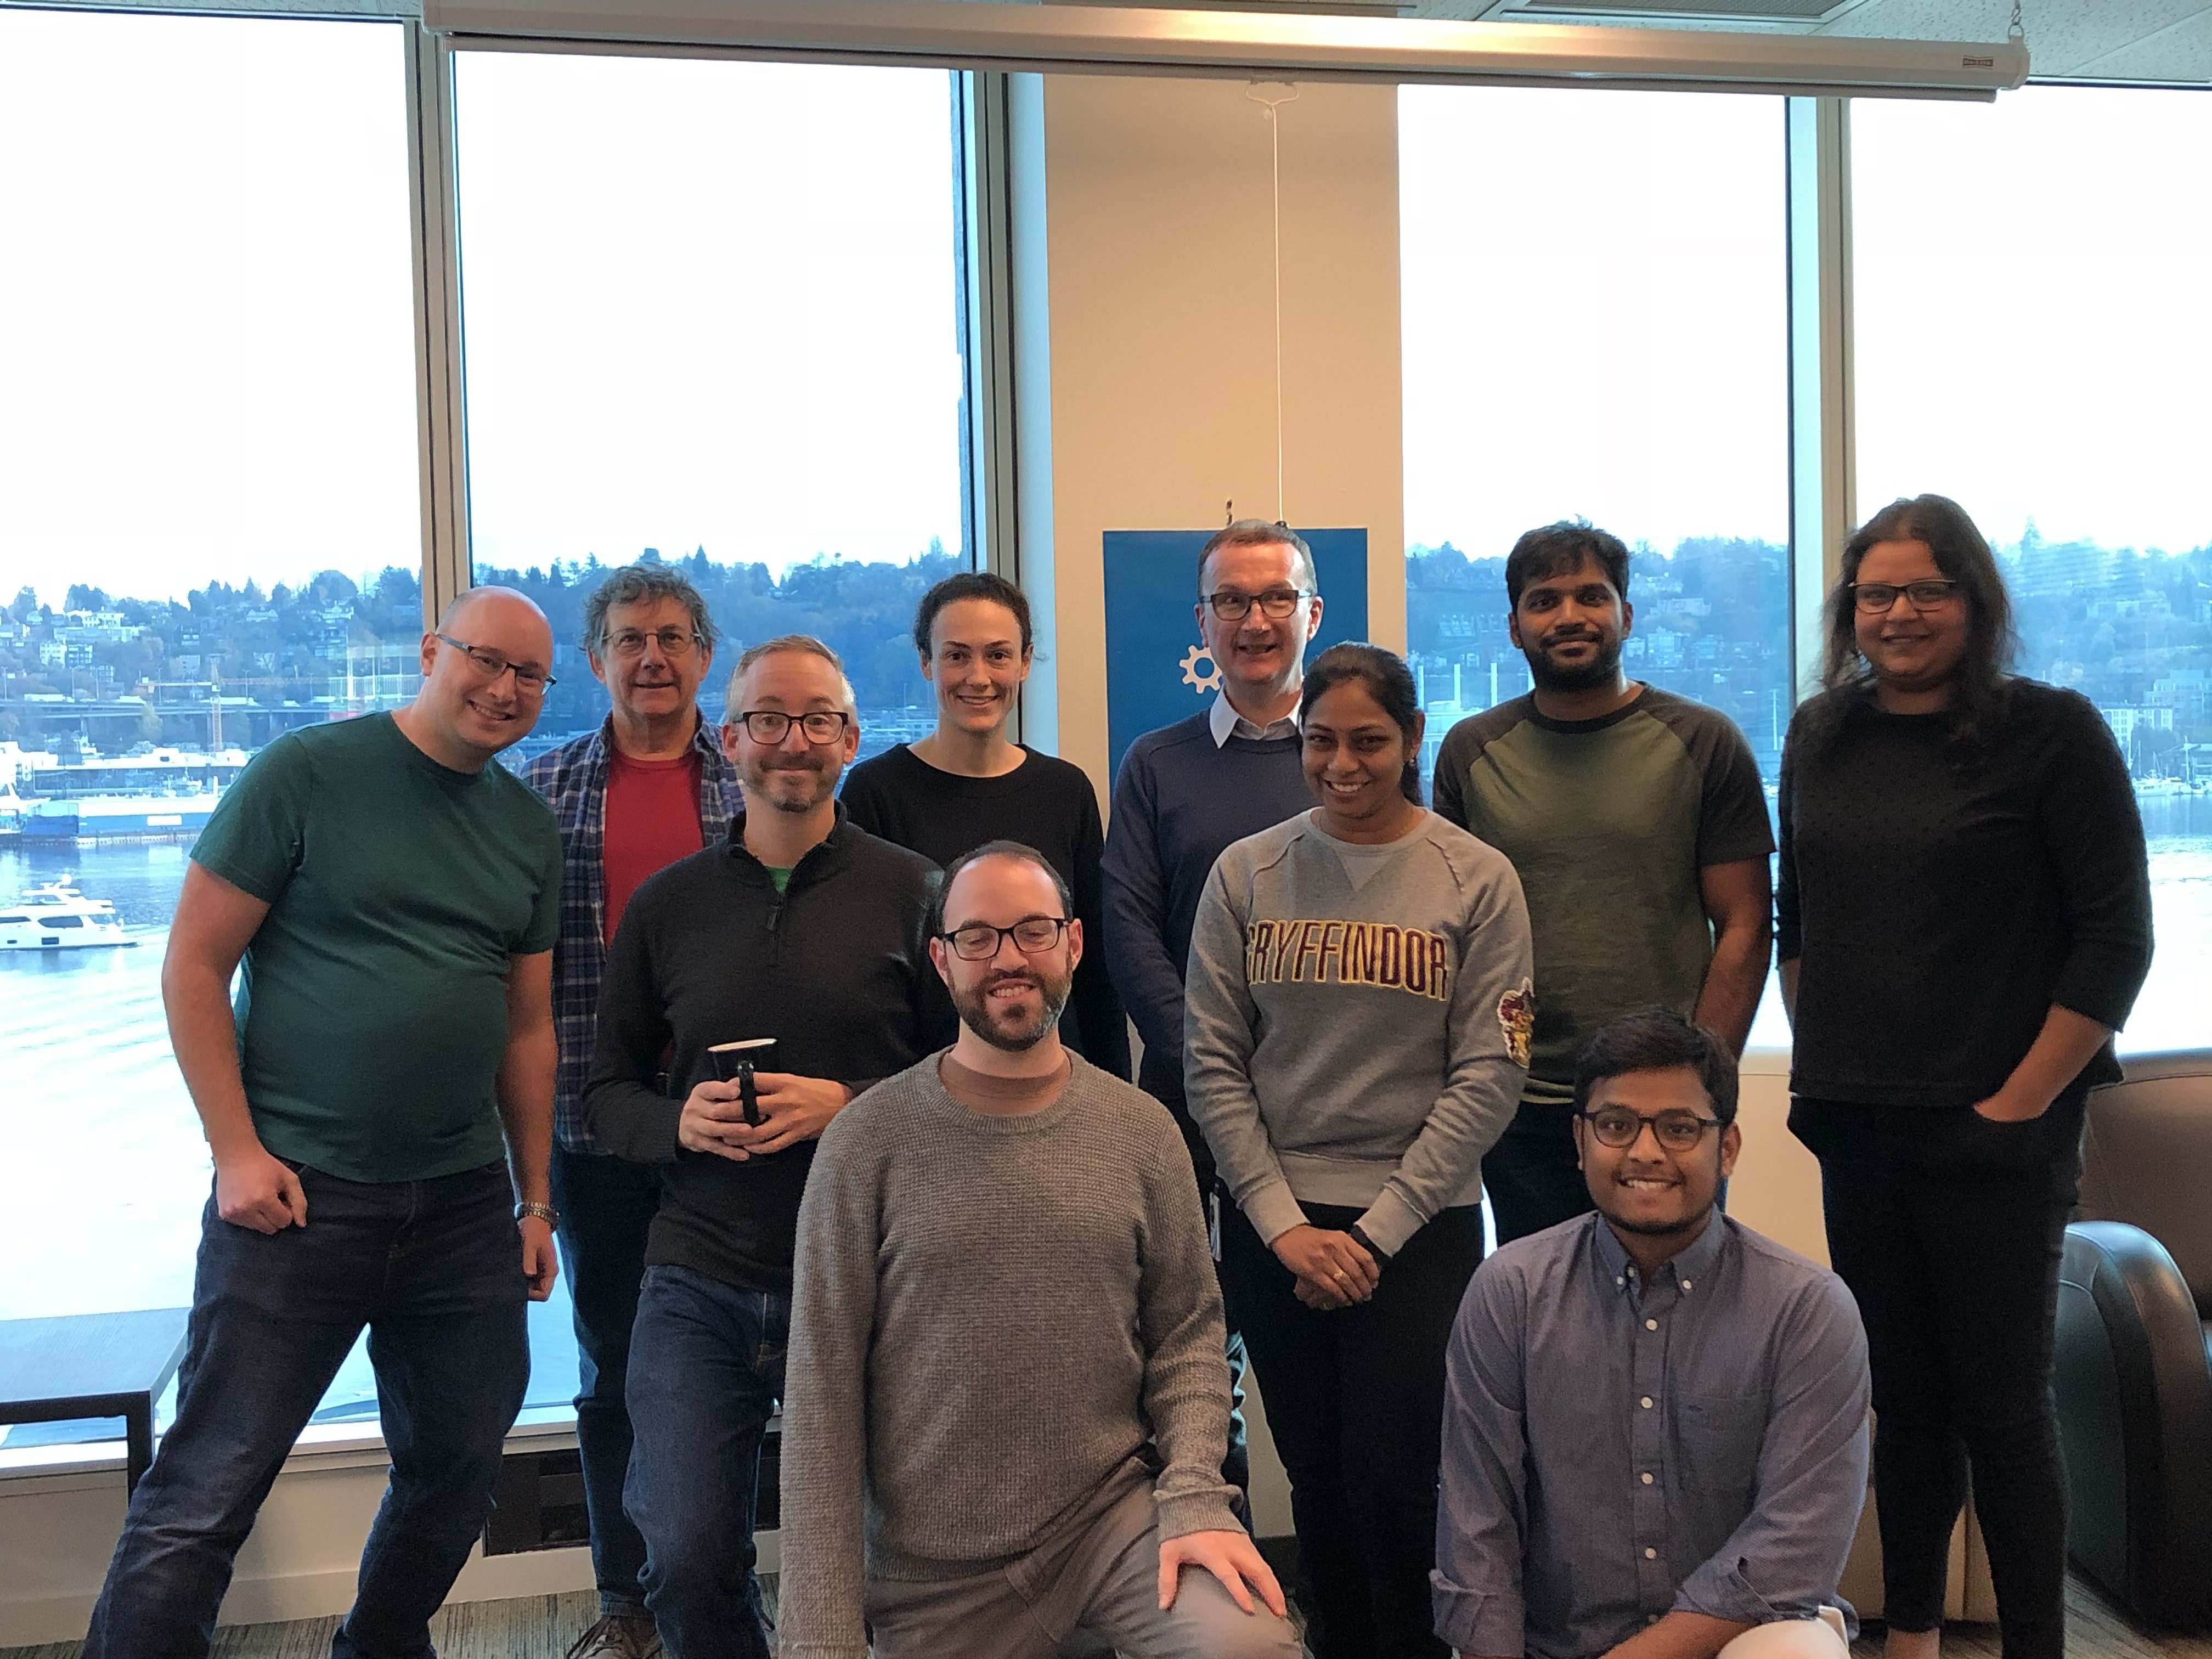 The Spotfire team from Seattle